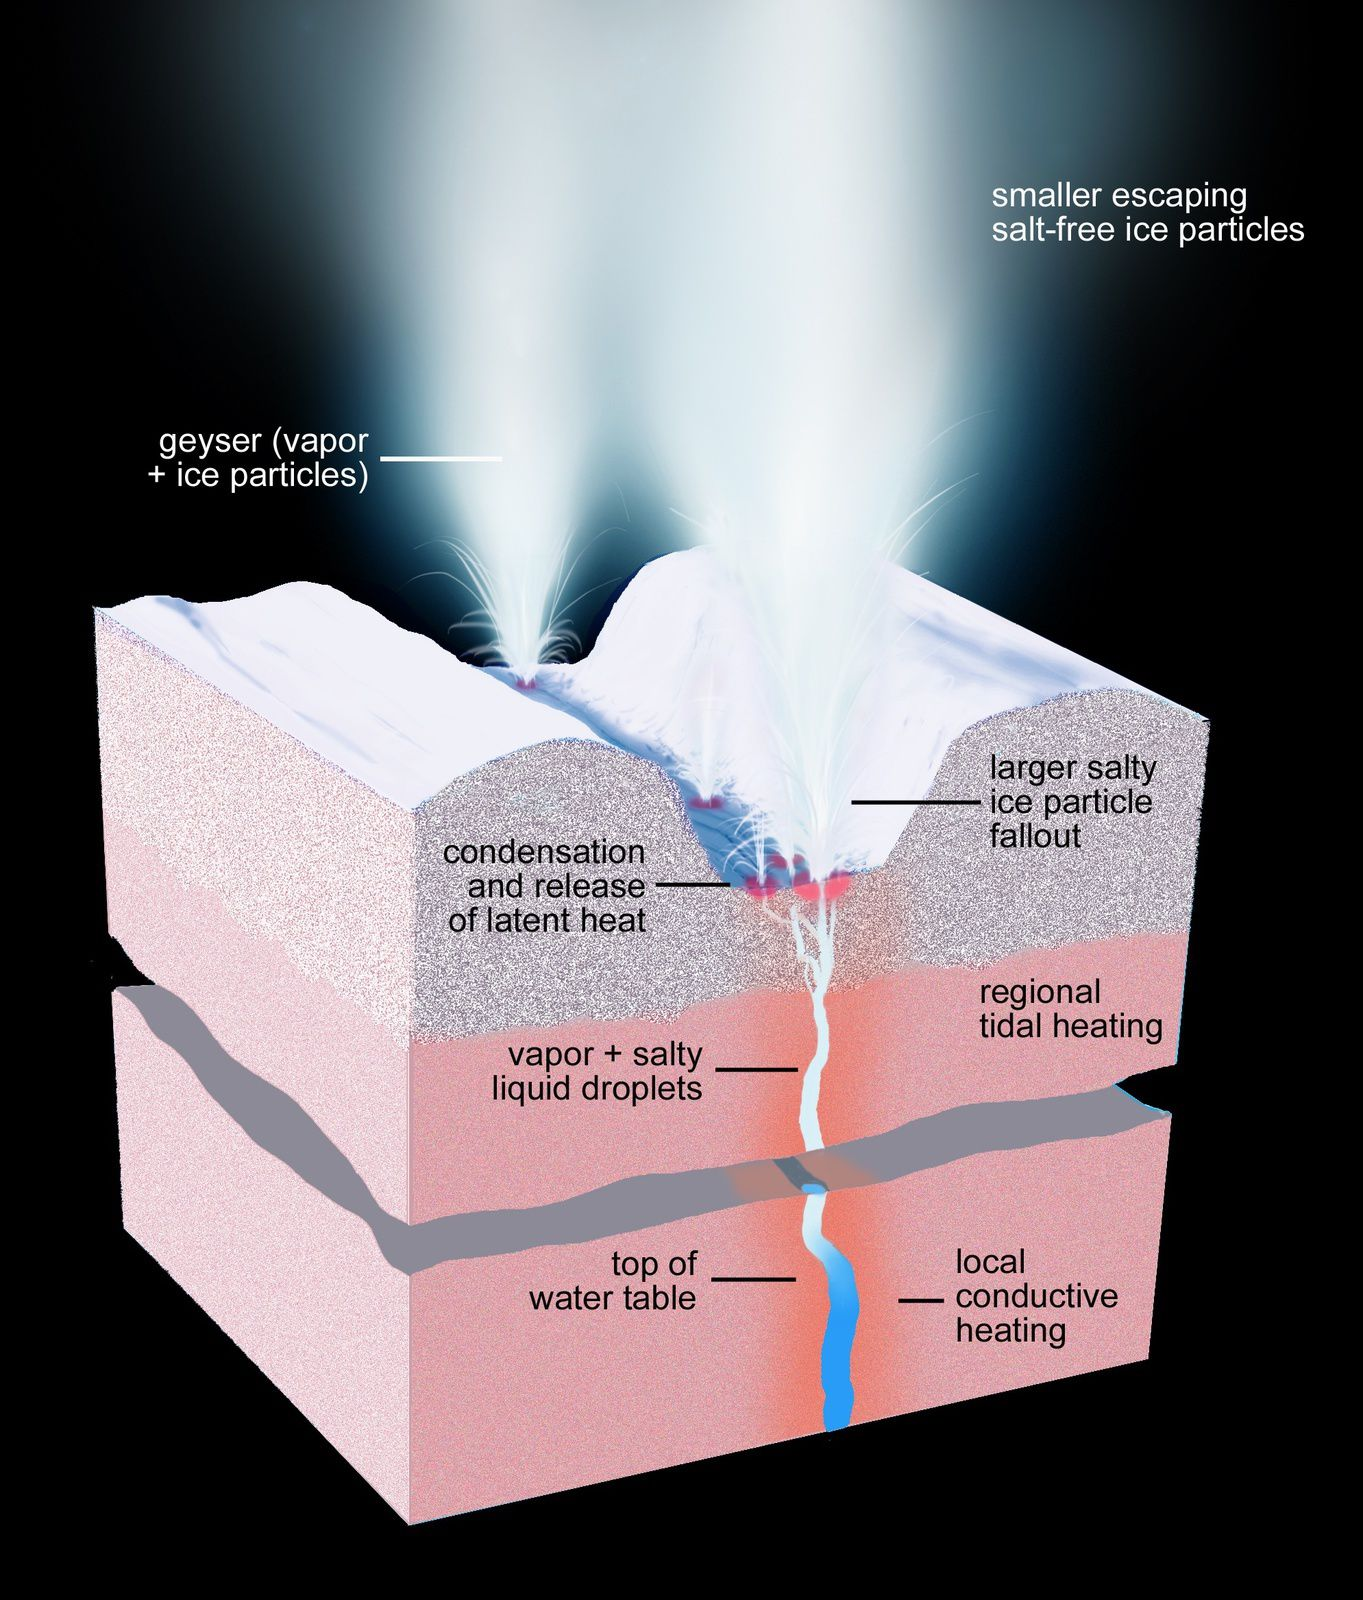 Cut in the ice sheet of  Enceladus above a fracture and active geysers, illustrating the physical and thermal structure and processes under and on the surface of the satellite. - Doc. NASA / JPL-Caltech / Space Science Institute